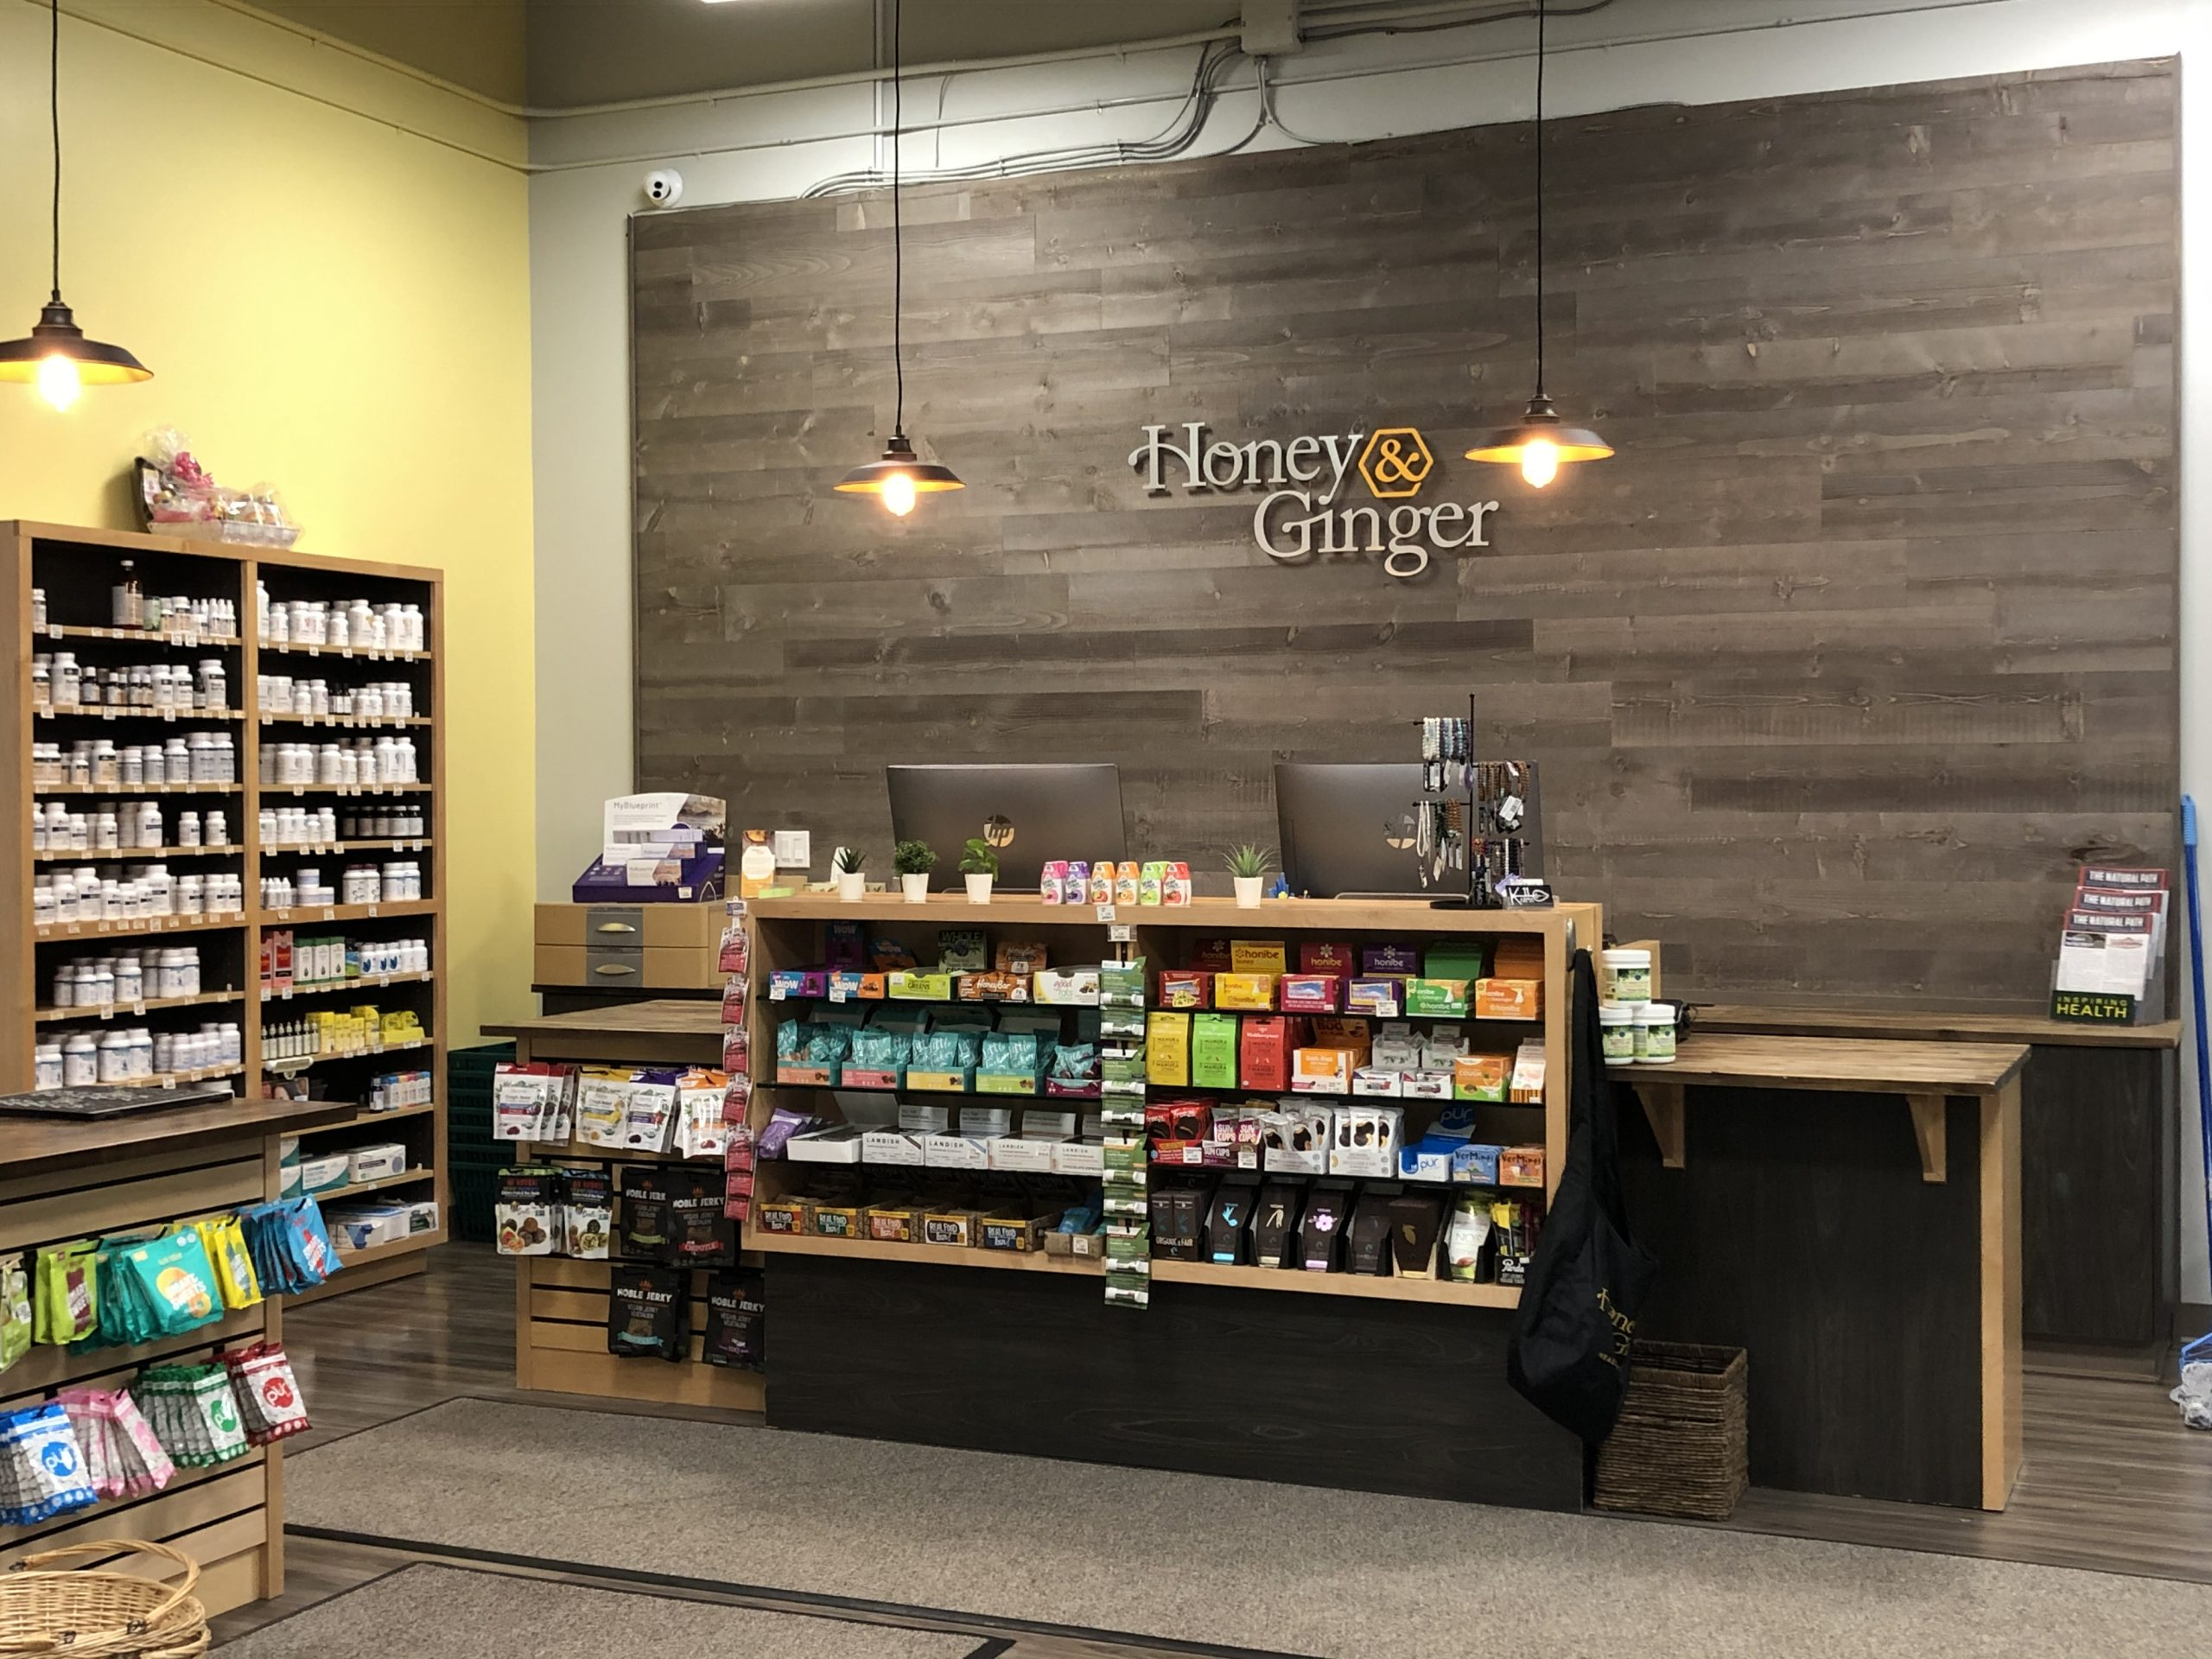 Honey & Ginger - retail construction project